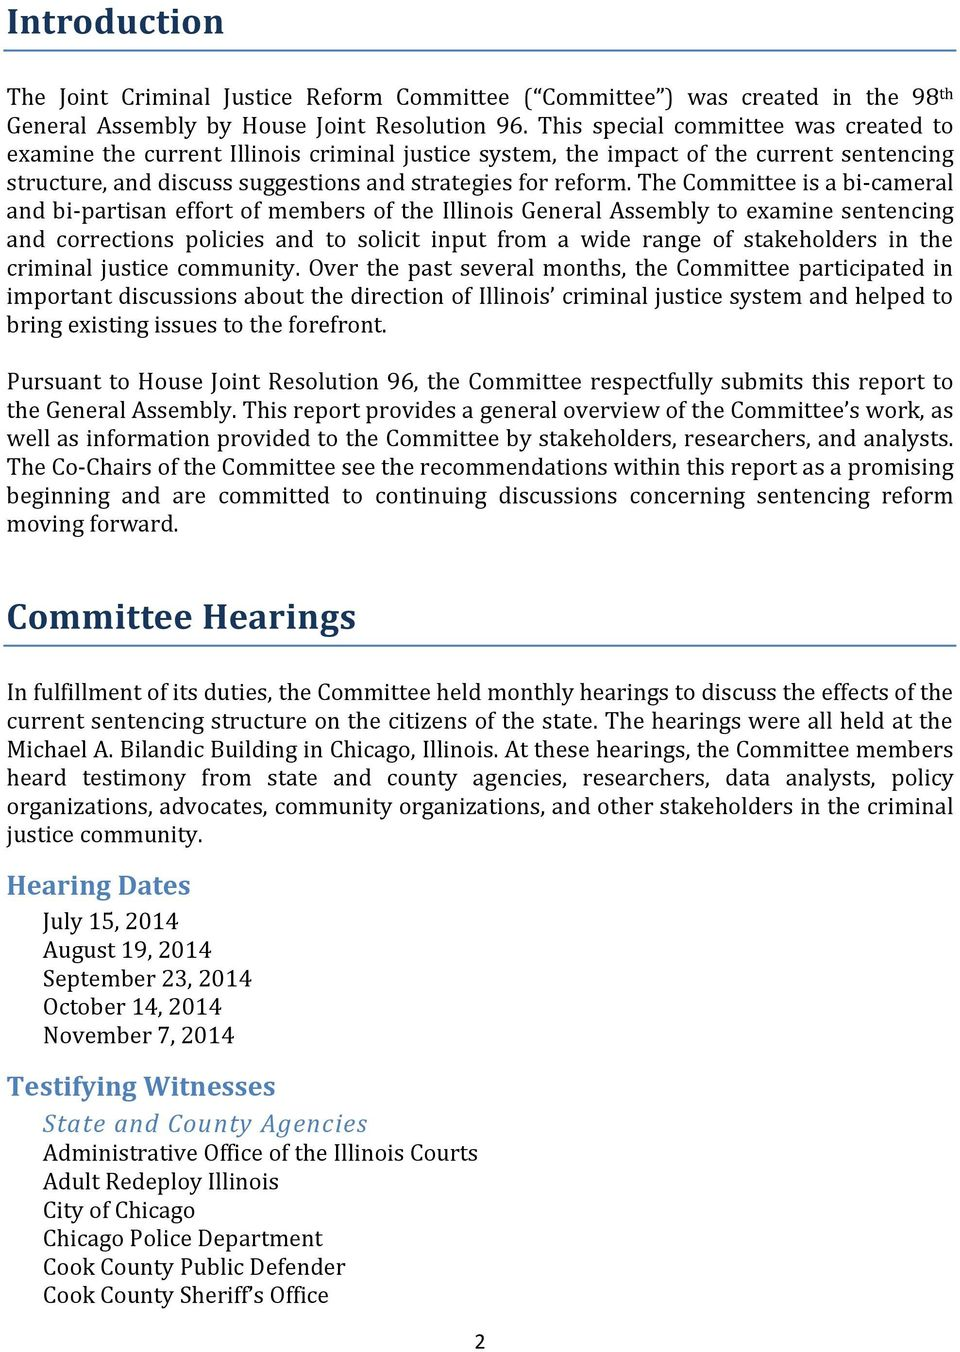 The Committee is a bi-cameral and bi-partisan effort of members of the Illinois General Assembly to examine sentencing and corrections policies and to solicit input from a wide range of stakeholders